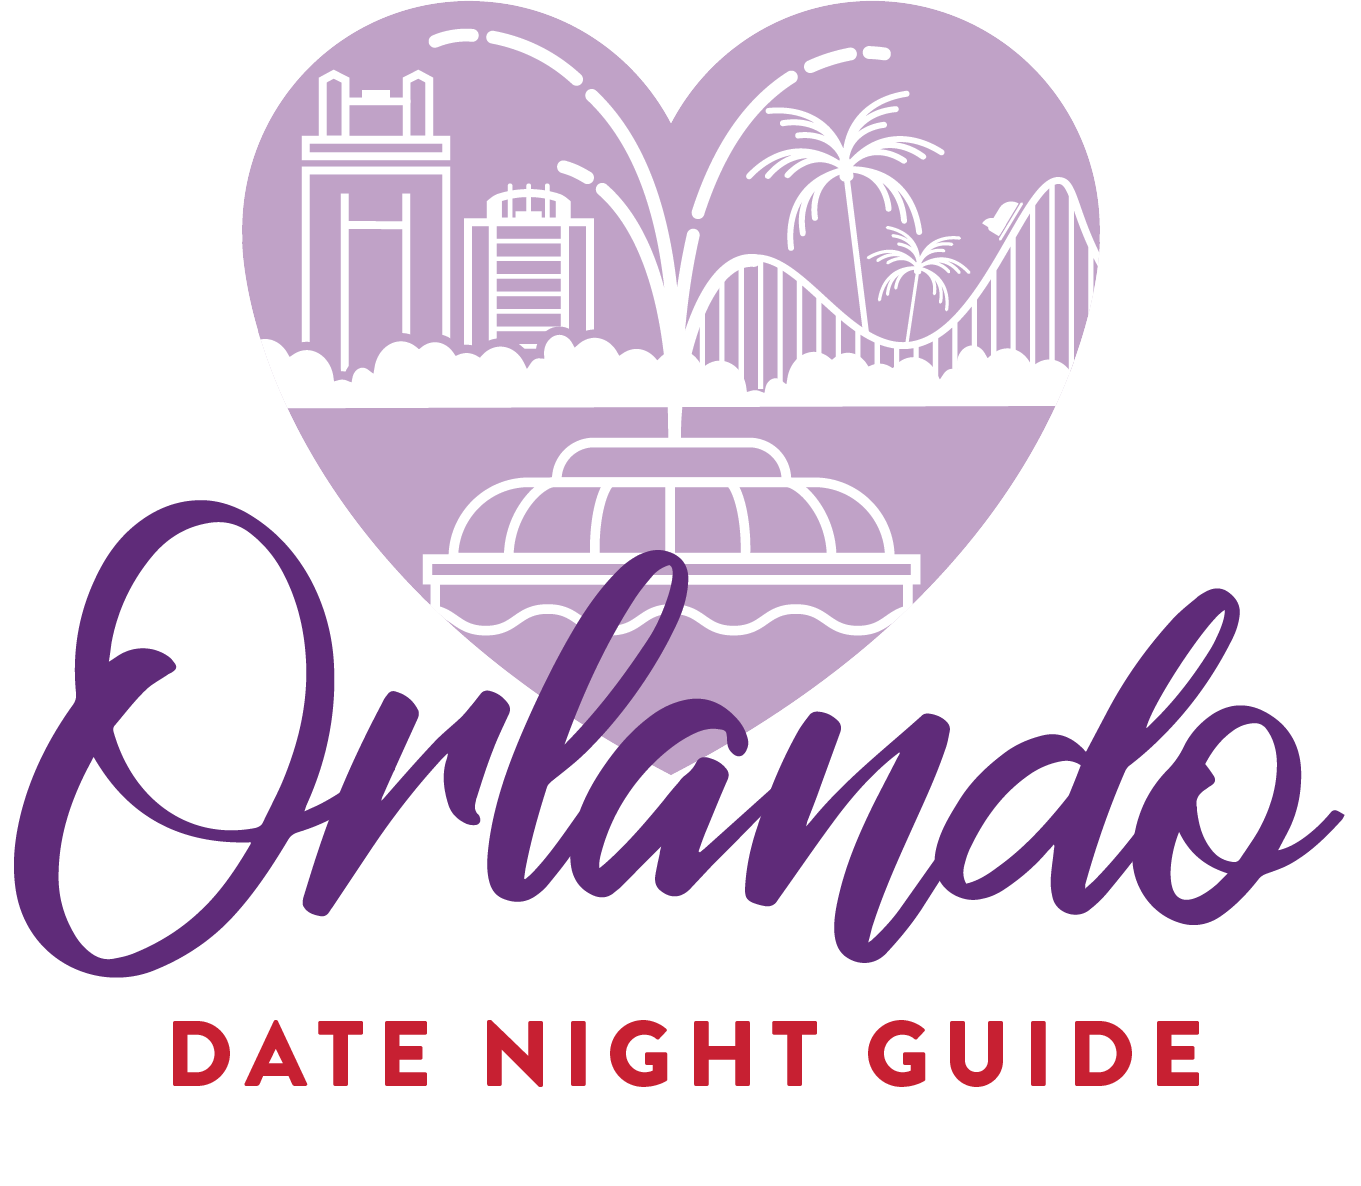 Orlando Date Night Guide -LOGO PNG.png